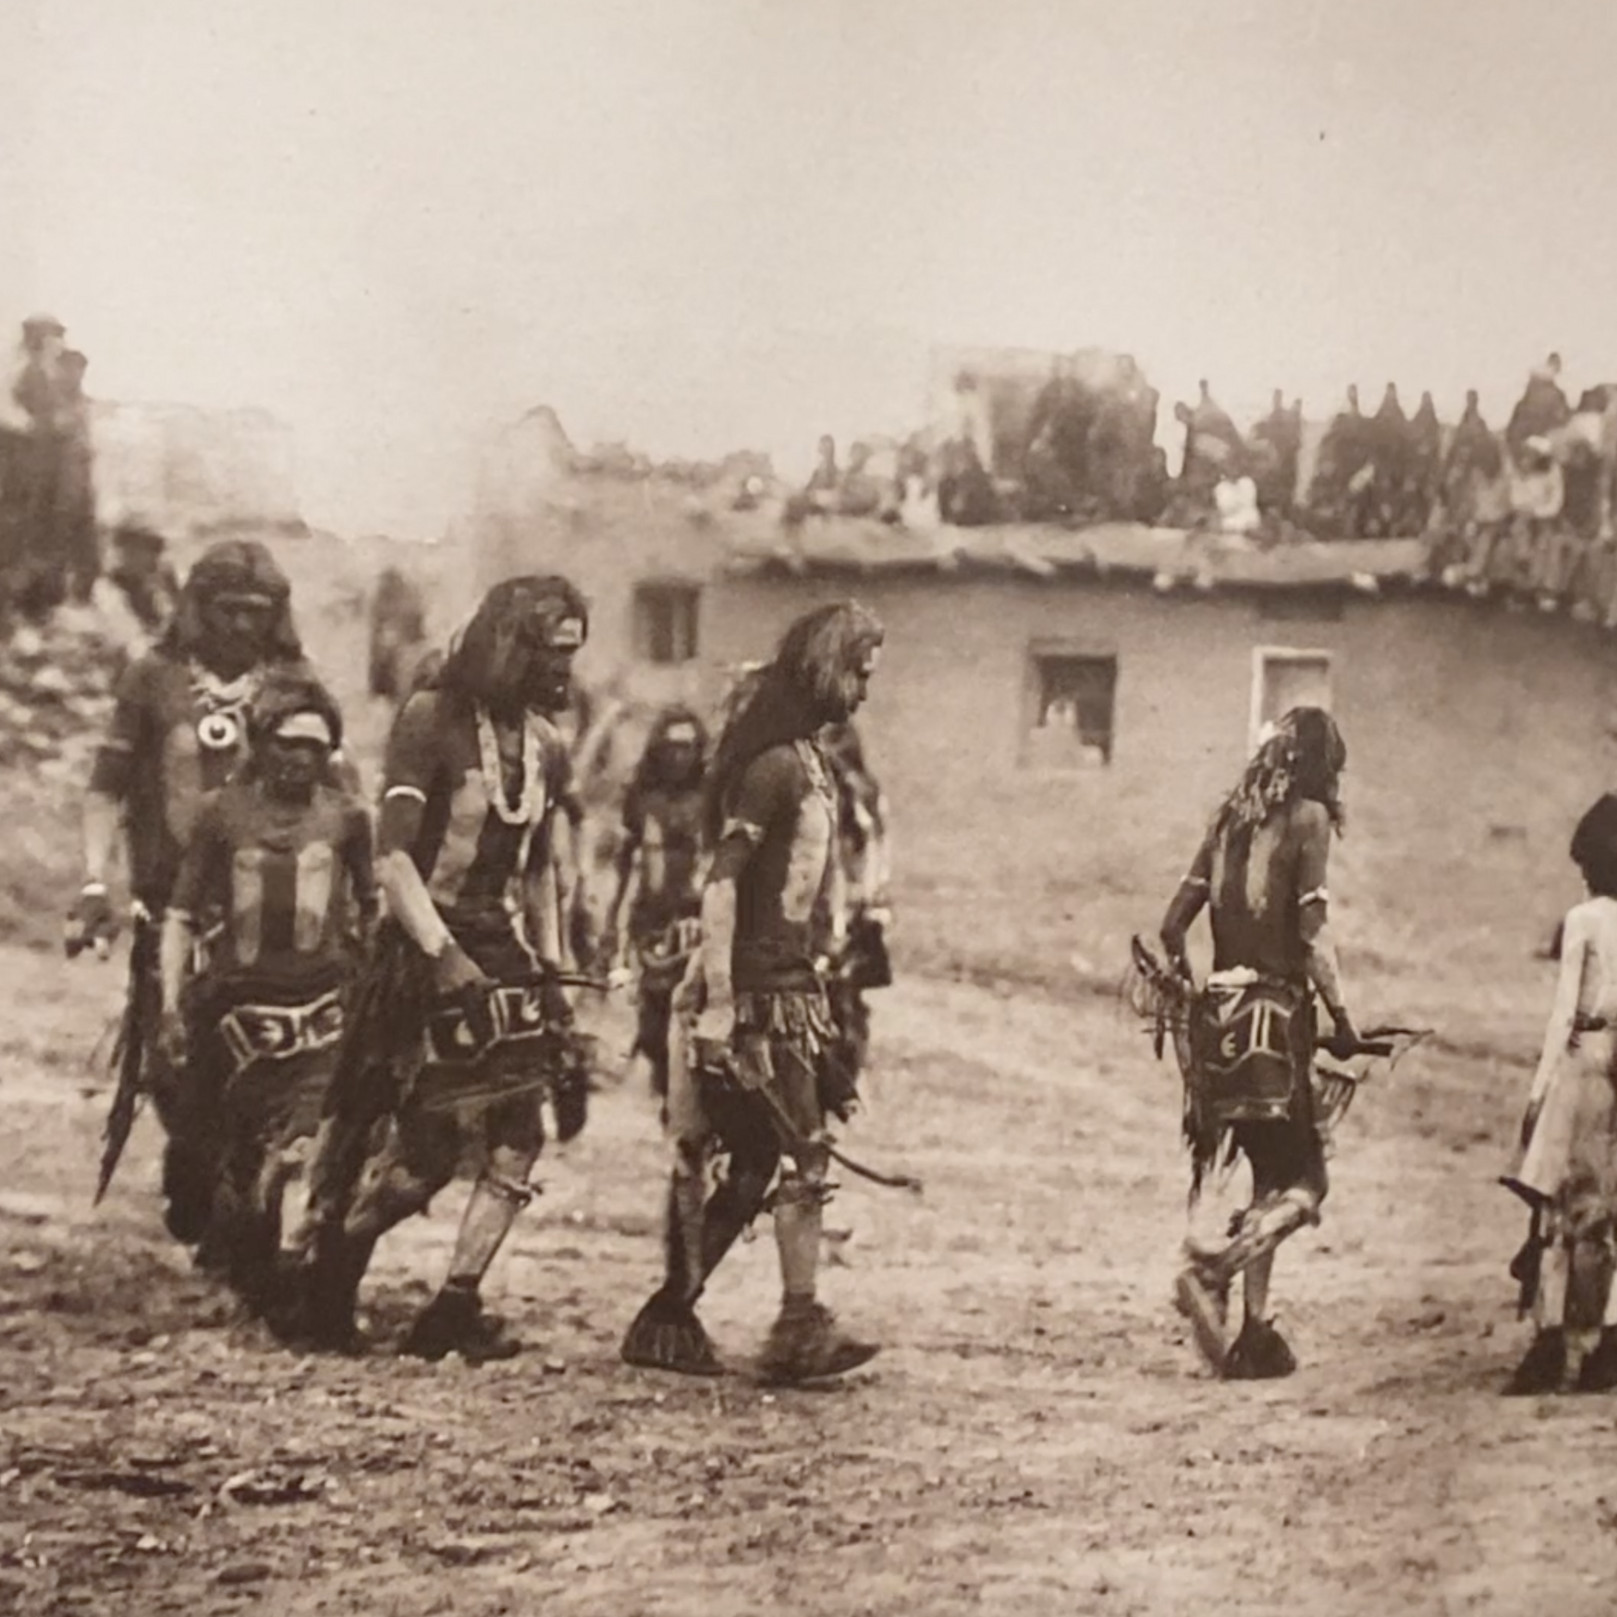 Photo of a Native American gathering